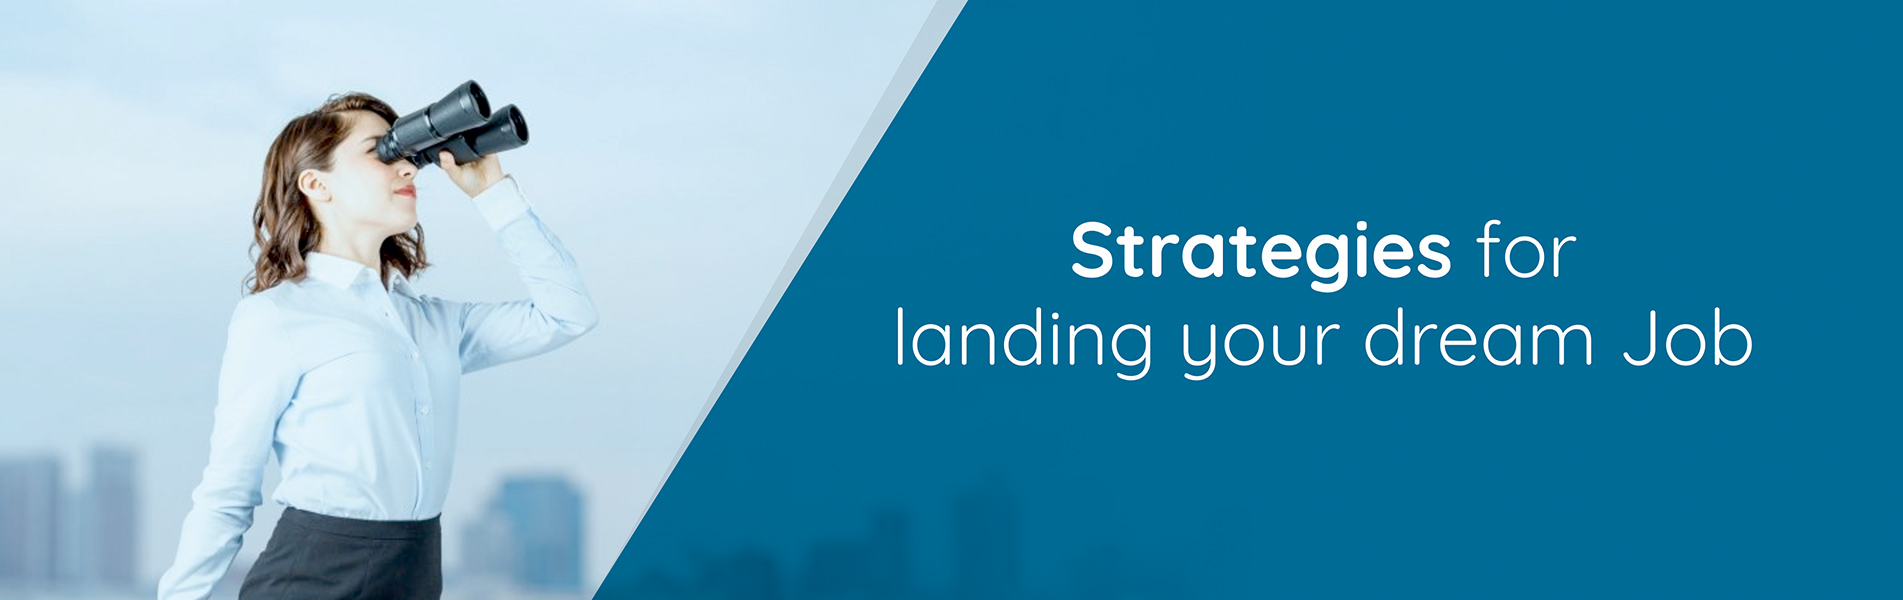 Strategies-for-landing-your-dream-Job